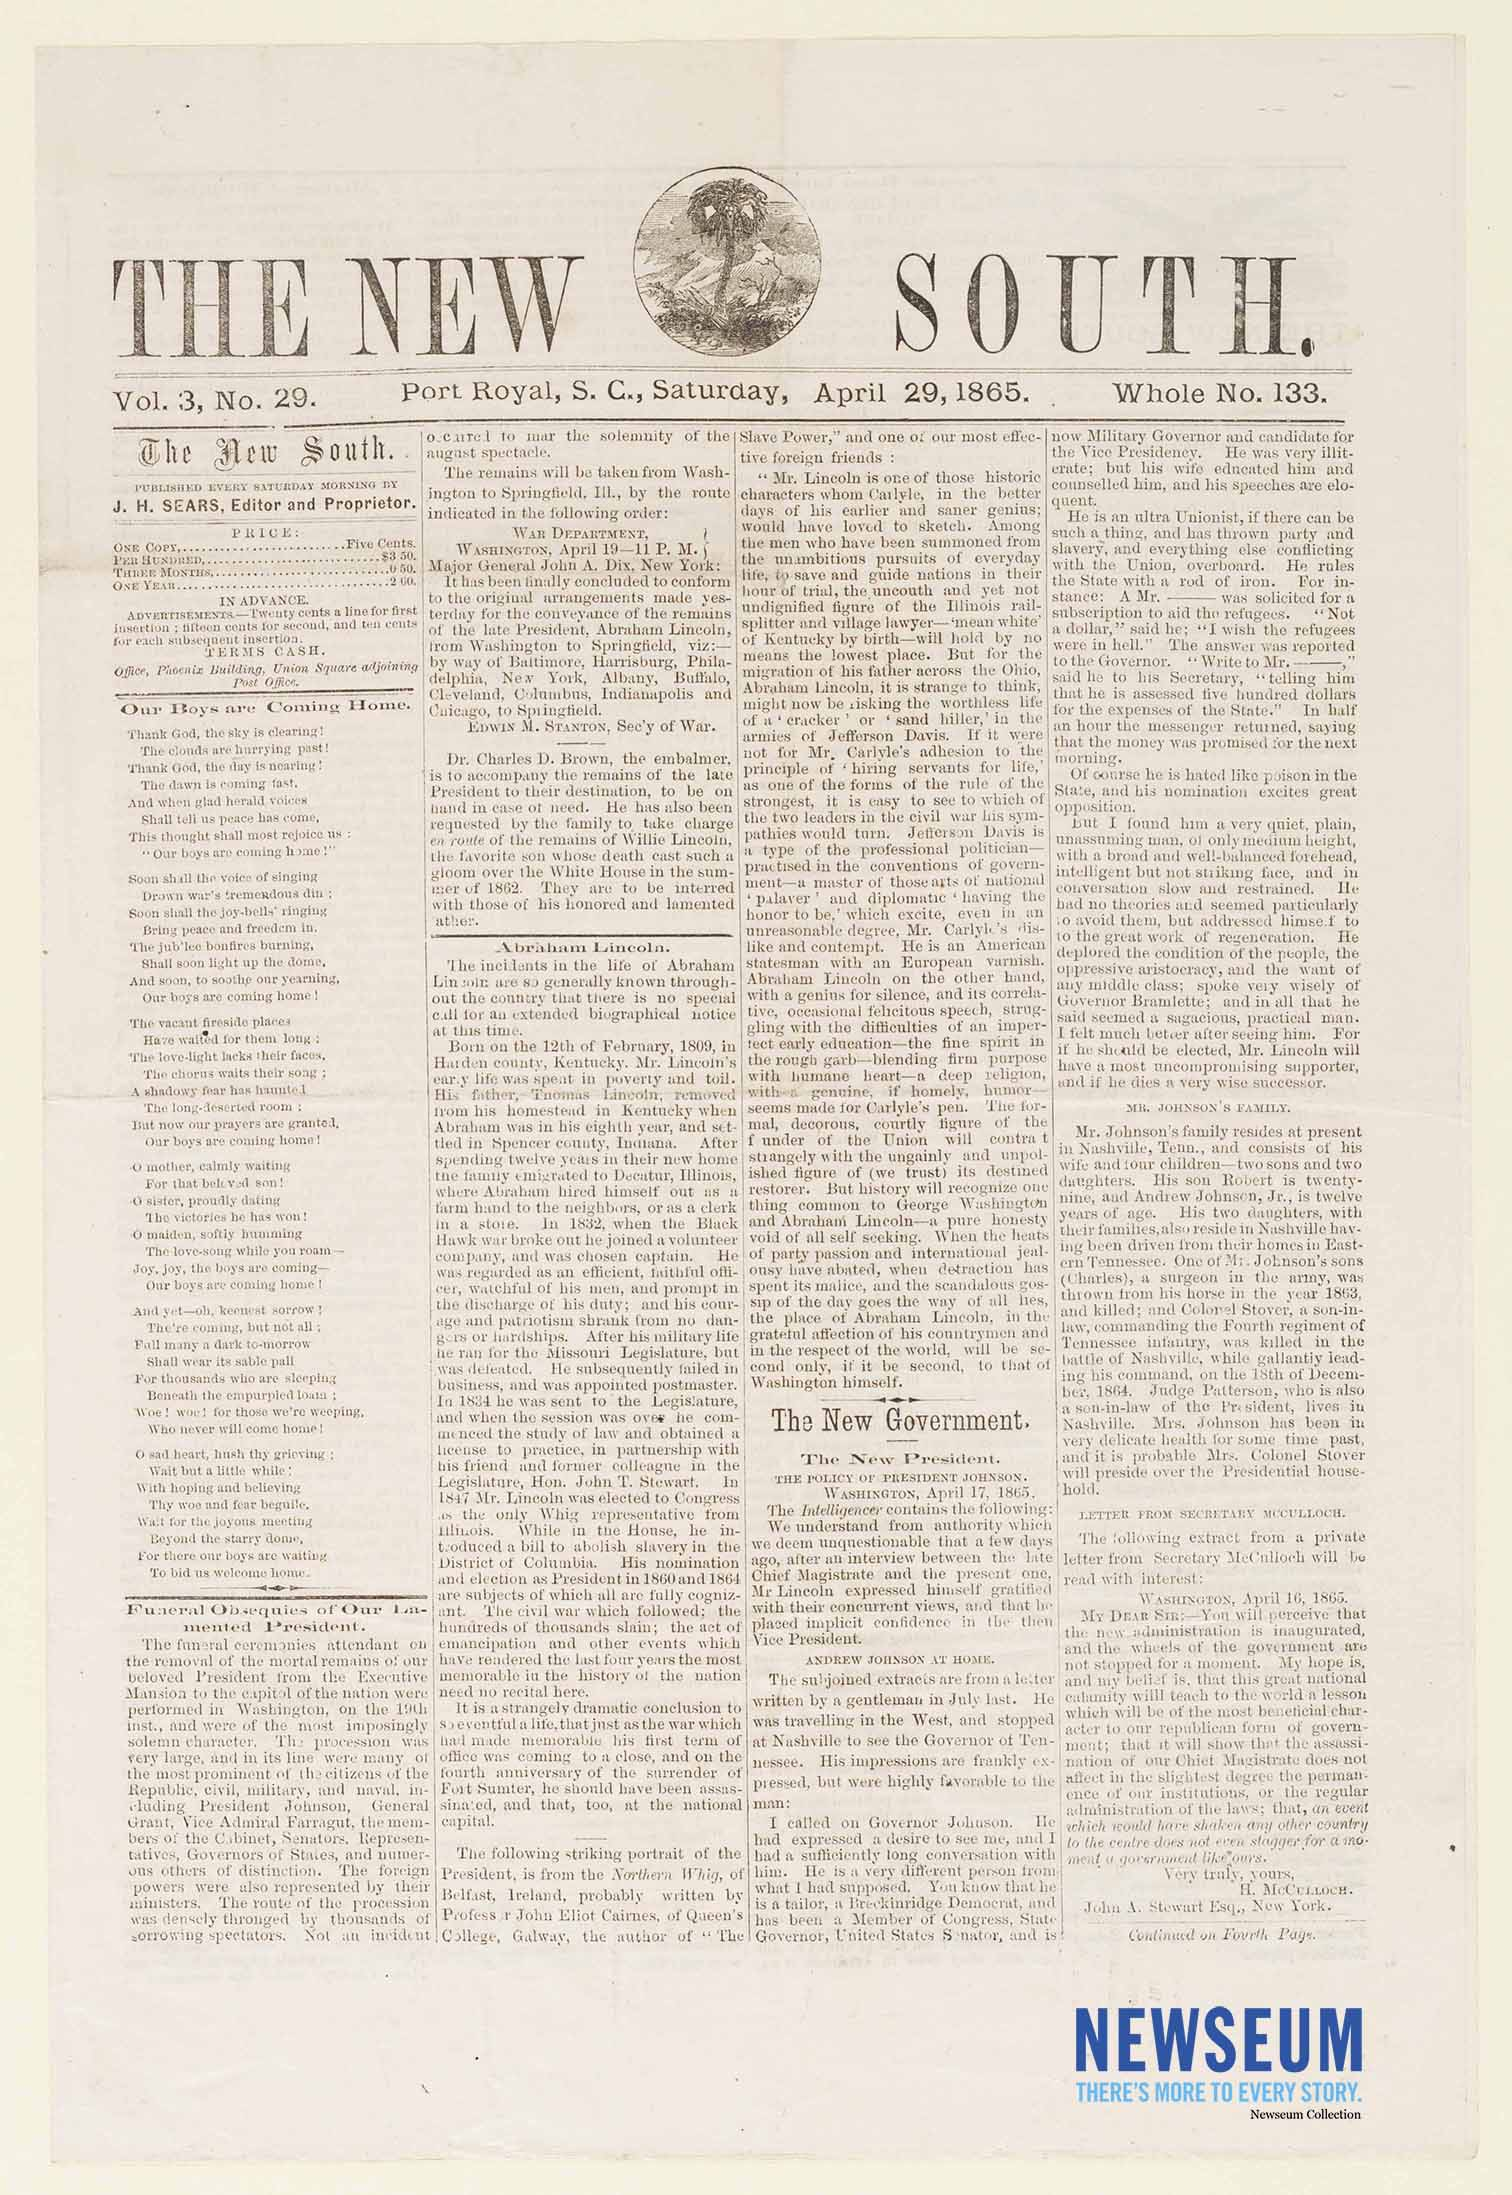 The New South, April 29, 1865